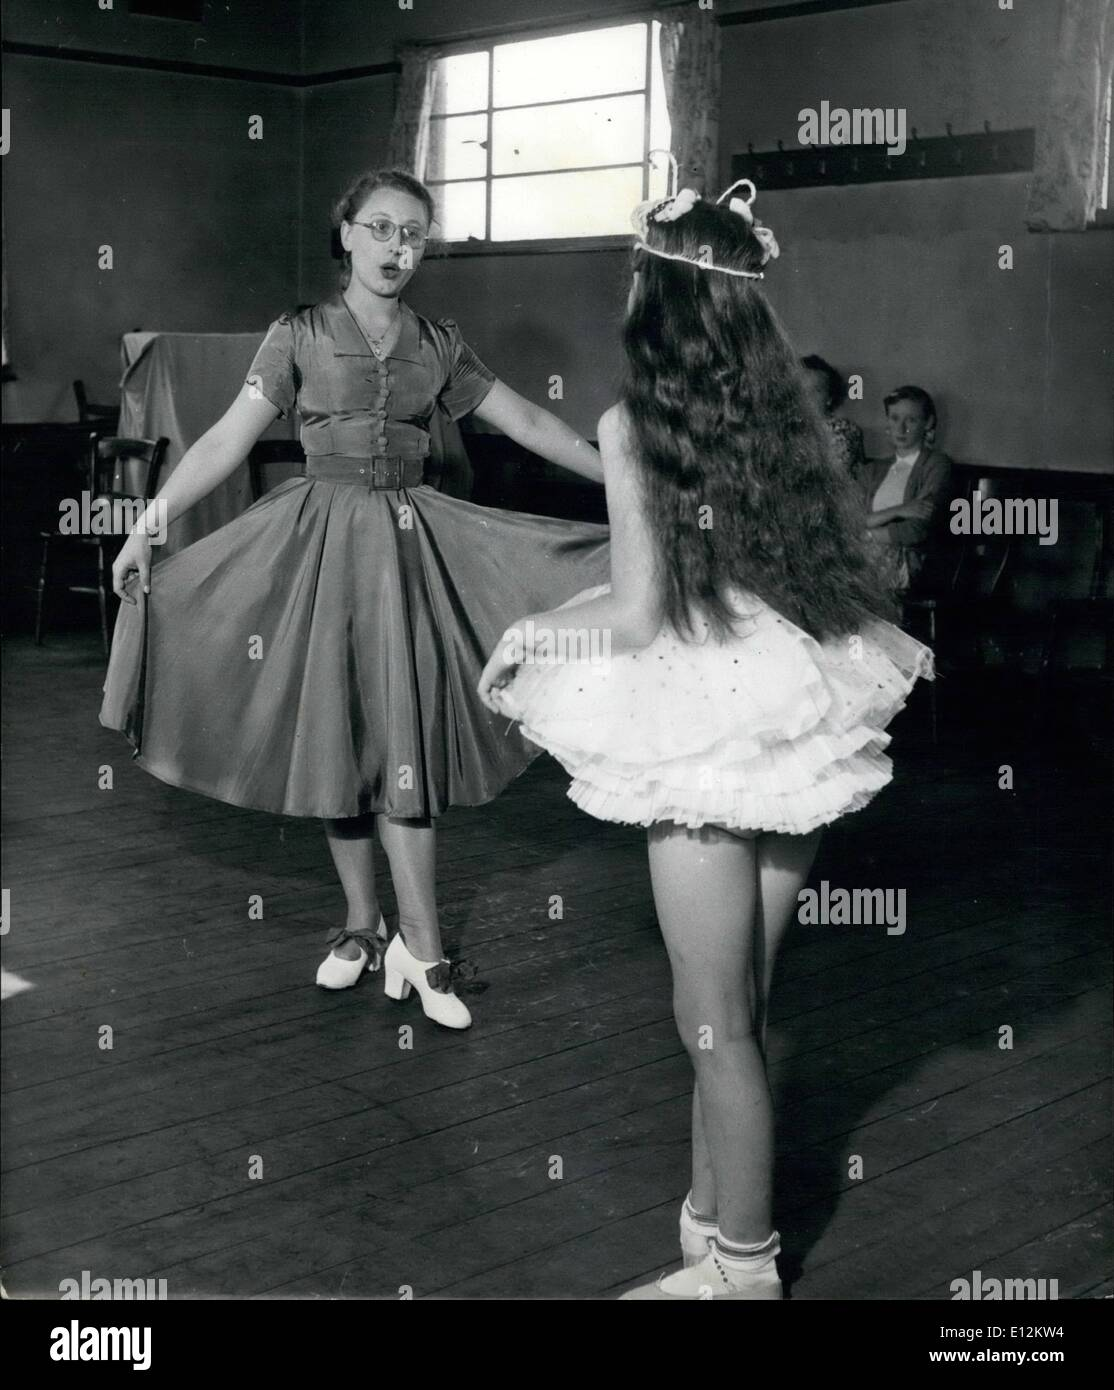 Feb. 24, 2012 - Miss Rita Maxted patiently teaches Diane Jarrett the art of ballet and tap dancing by means of lip reading. Diane cannot hear the music but she has an excellent sense of rythym. - Stock Image